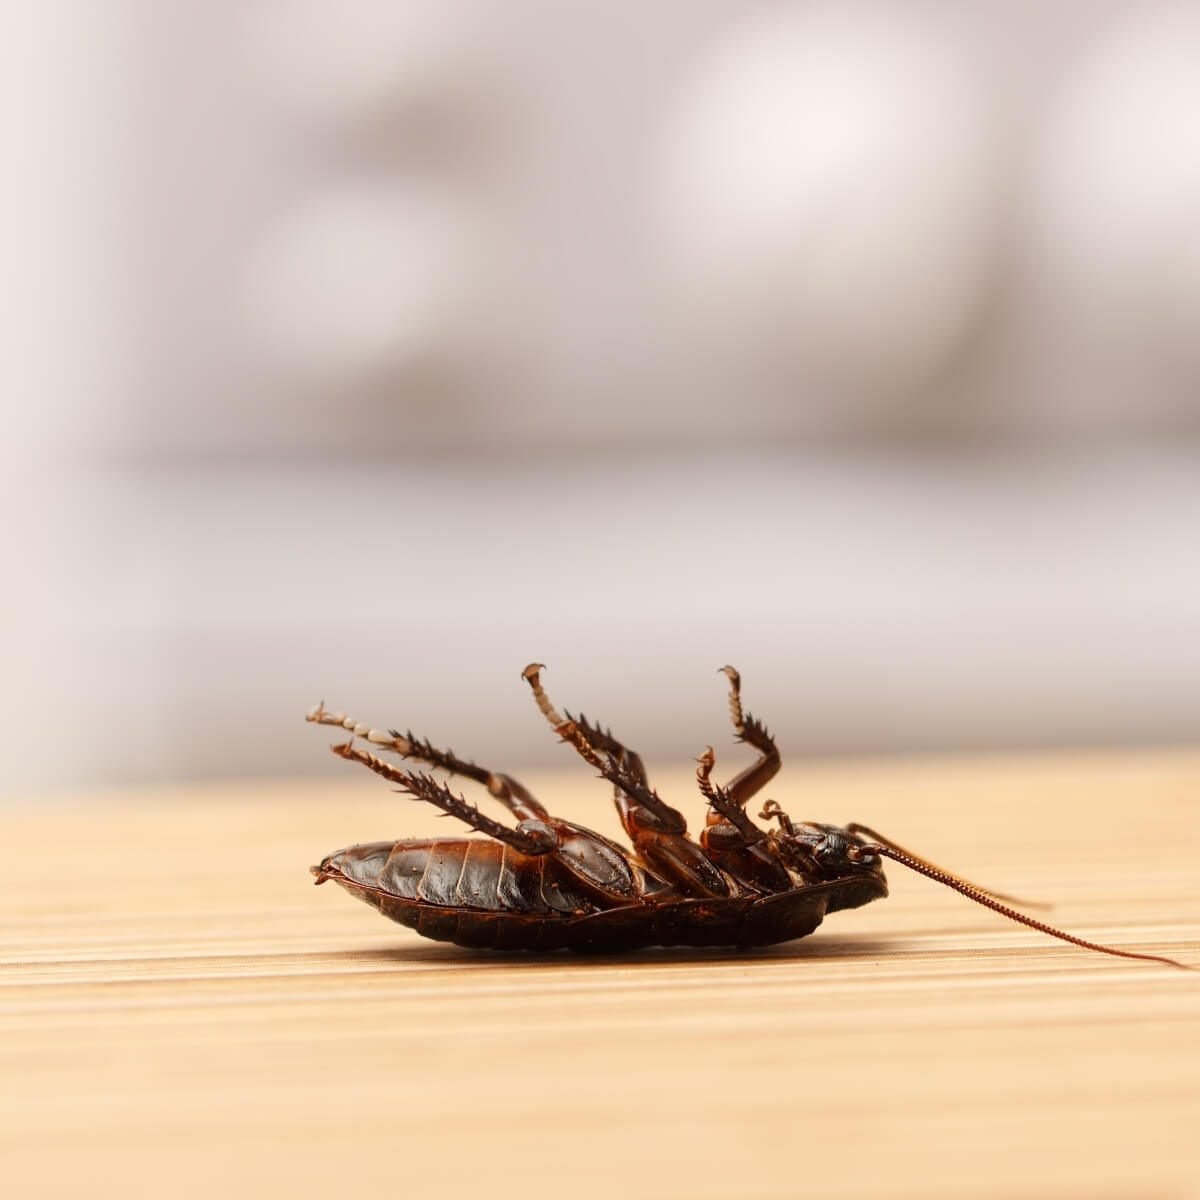 cockroaches dying on their back